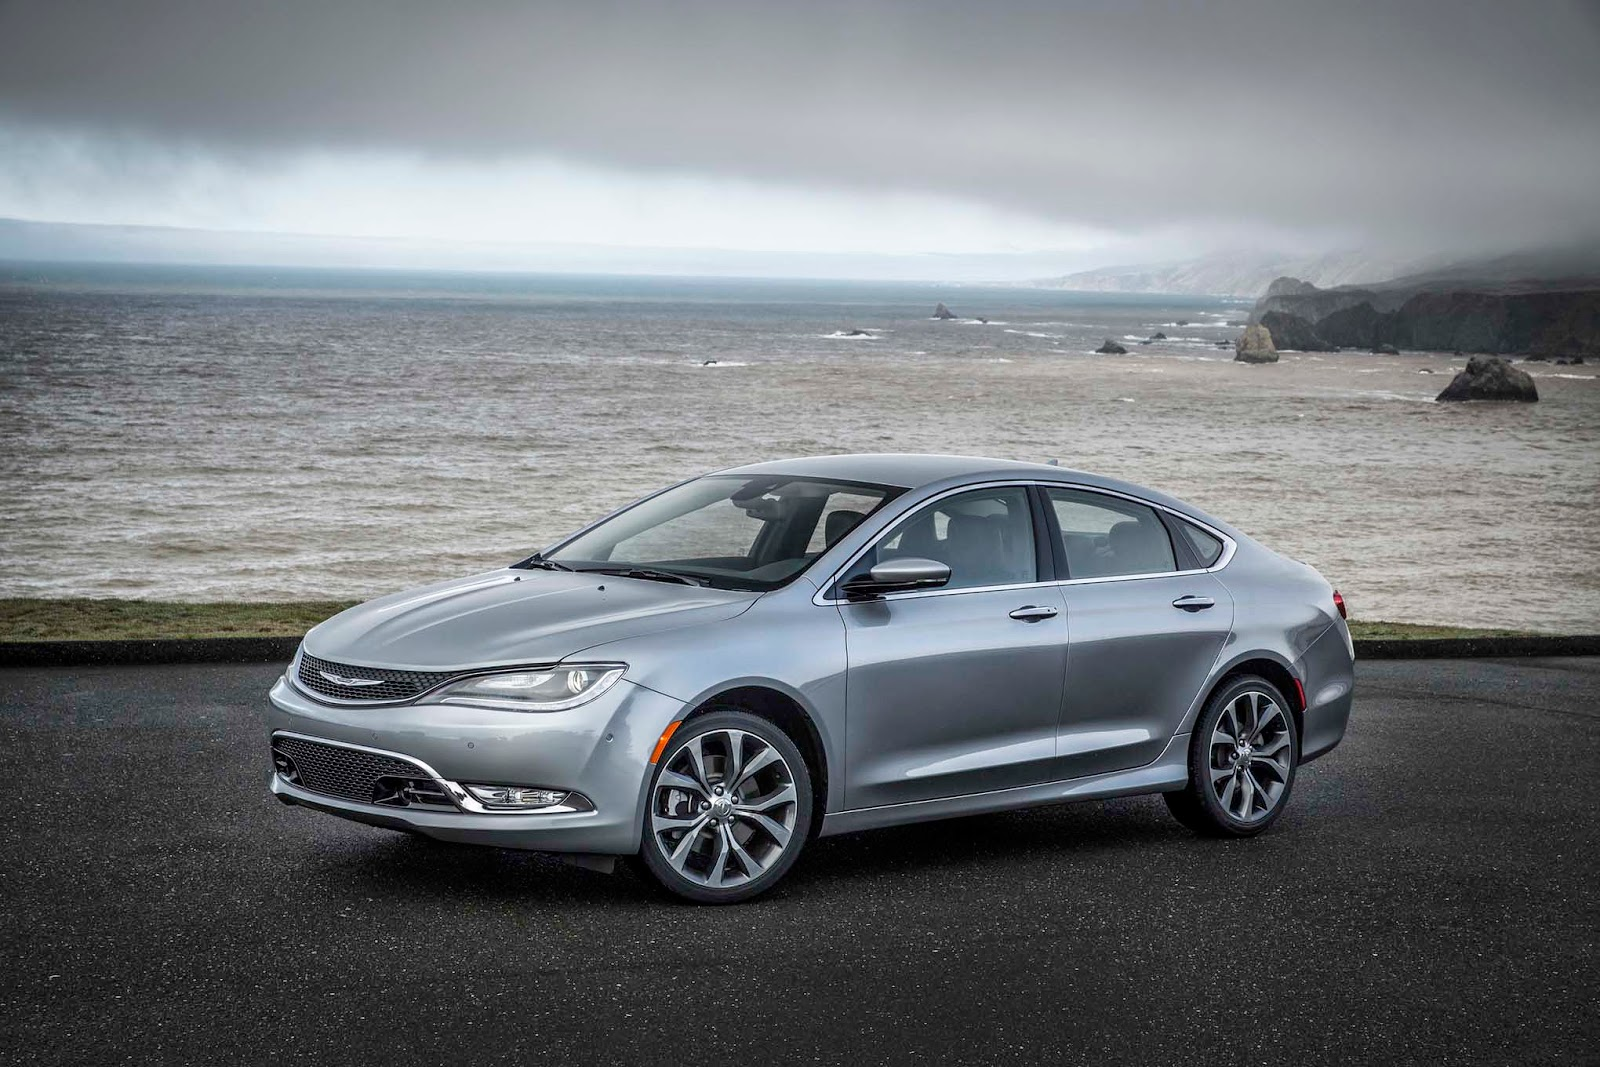 2015 chrysler 200 c s photos gallery autos. Black Bedroom Furniture Sets. Home Design Ideas